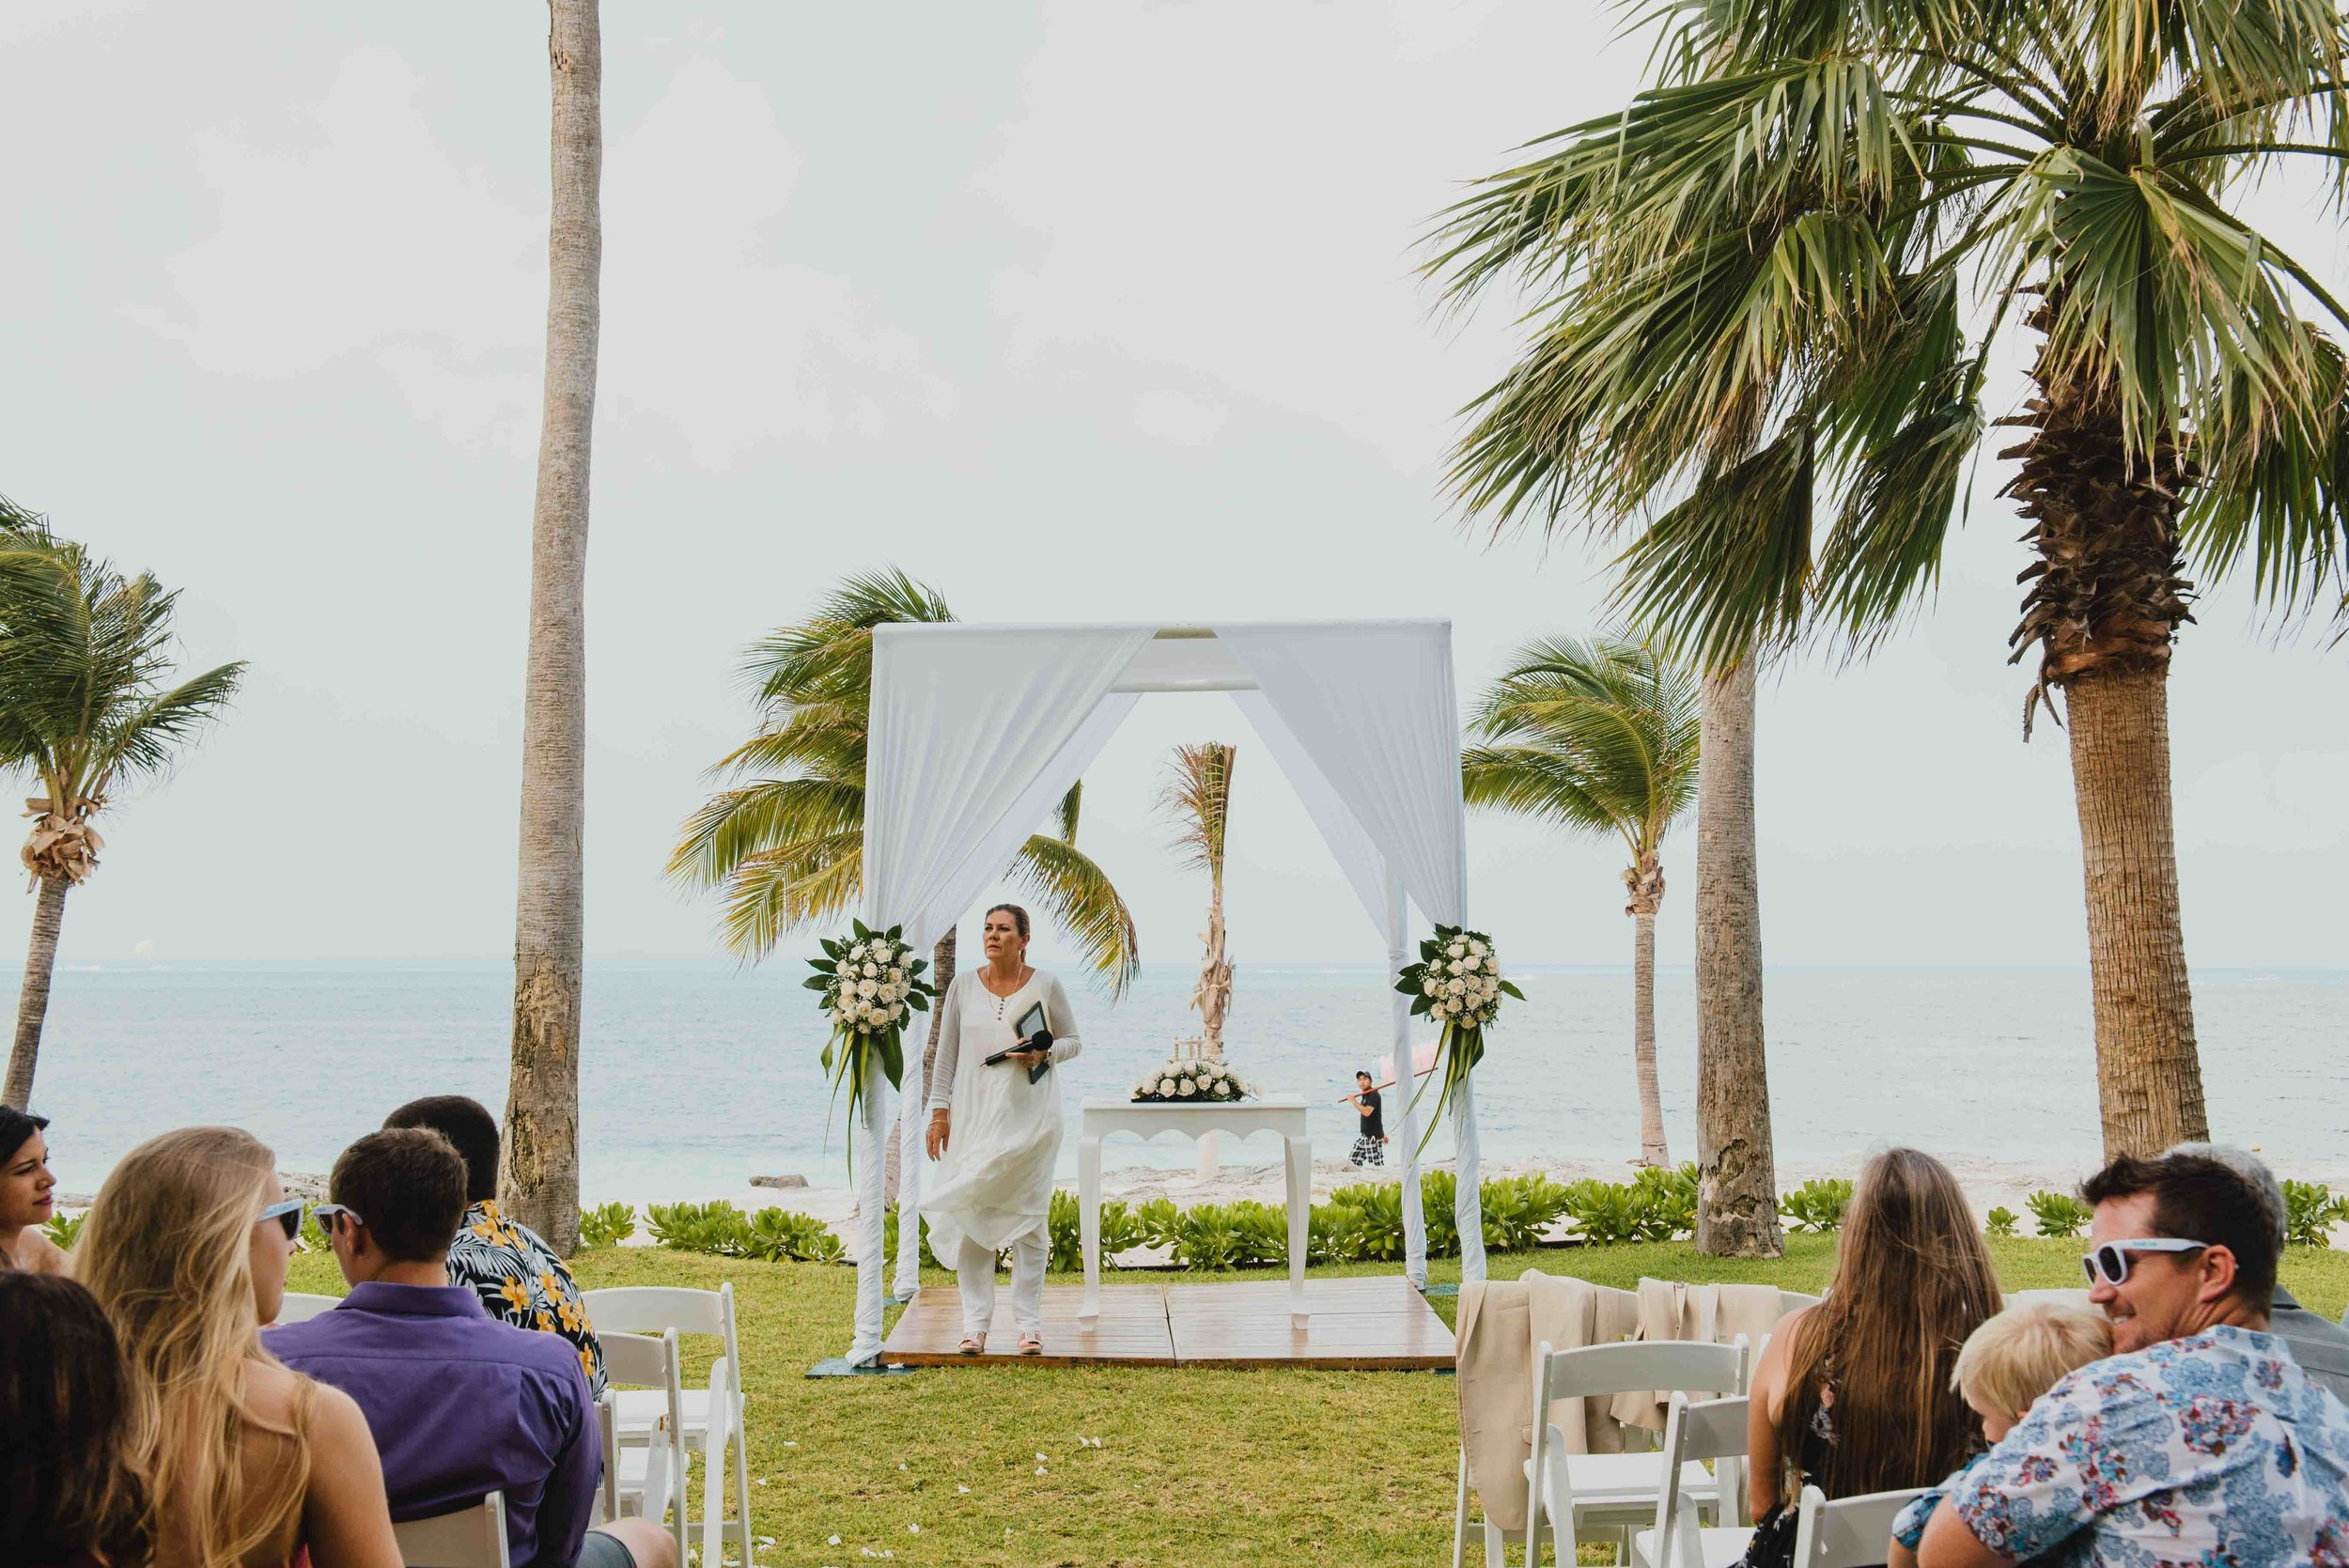 Beach-Wedding-Photography-Cancun-Elopement-Destination-Elopement-Photography-Destination-Beach-Wedding-+Costa-Rica-Wedding-Photography-Beach-Wedding-Photos-teresawoodhull-Cancun-Elopement-Beach-Wedding-+Sunset-Beach-Wedding-Fotografia-de-bodas-Nicoya-Peninsula-Elopement-Photographer-Santa-Teresa-Elopement-Photographer-Adventure-elopement-photographer-Santa-Teresa-Wedding-Photographer-Adventure-Wedding-Boda-playa-santa-teresa-Adventure-Wedding-Photography-Adventure-Wedding-Photographer-Beach-Elopement-Beach-Elopement-Photos-maddie-mae-Beach-Elopement-Photographer-Destination-Elopement-Photographer-Sunset-Beach-Elopement-Mexico-wedding-photographer-cabo-wedding-photographer-mexico-wedding-mexico-destination-wedding-cancun-destination-wedding-cancun-elopement-photographer-playa-del-carmen-wedding-playa-del-carmen-destination-wedding-photographer-playa-del-carmen-wedding-photography-Nicoya-Peninsula-Wedding-Photography-Nicoya-Peninsula-Wedding-Photographer-Nicoya-Peninsula-Elopement-Photography-wedding-ceremony-altar